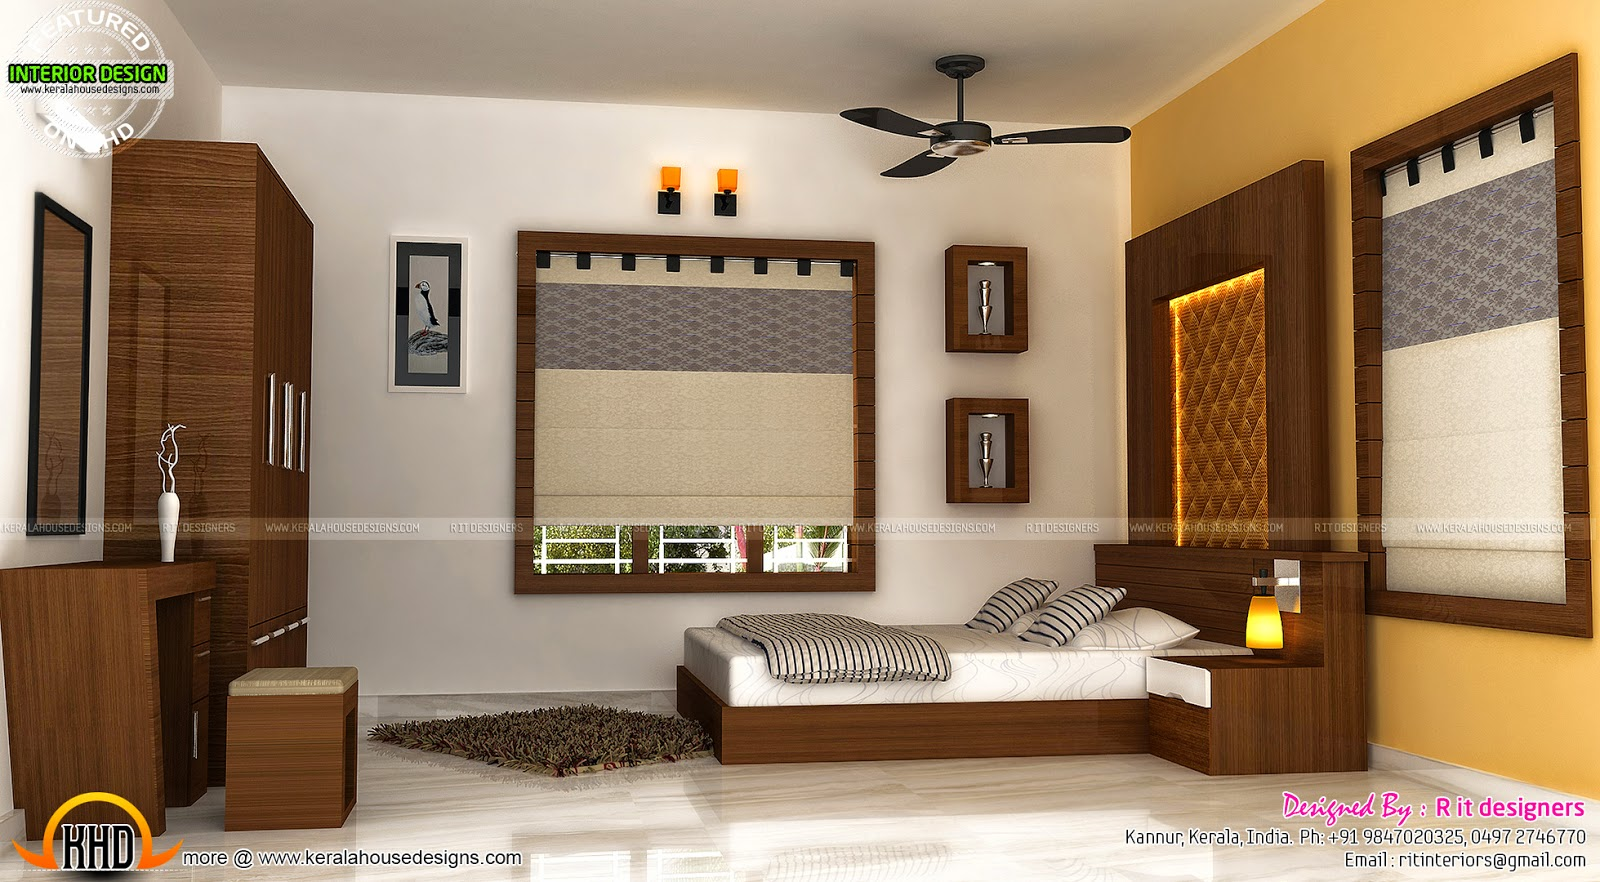 Staircase Bedroom Dining Interiors Kerala Home Design And Floor Plans